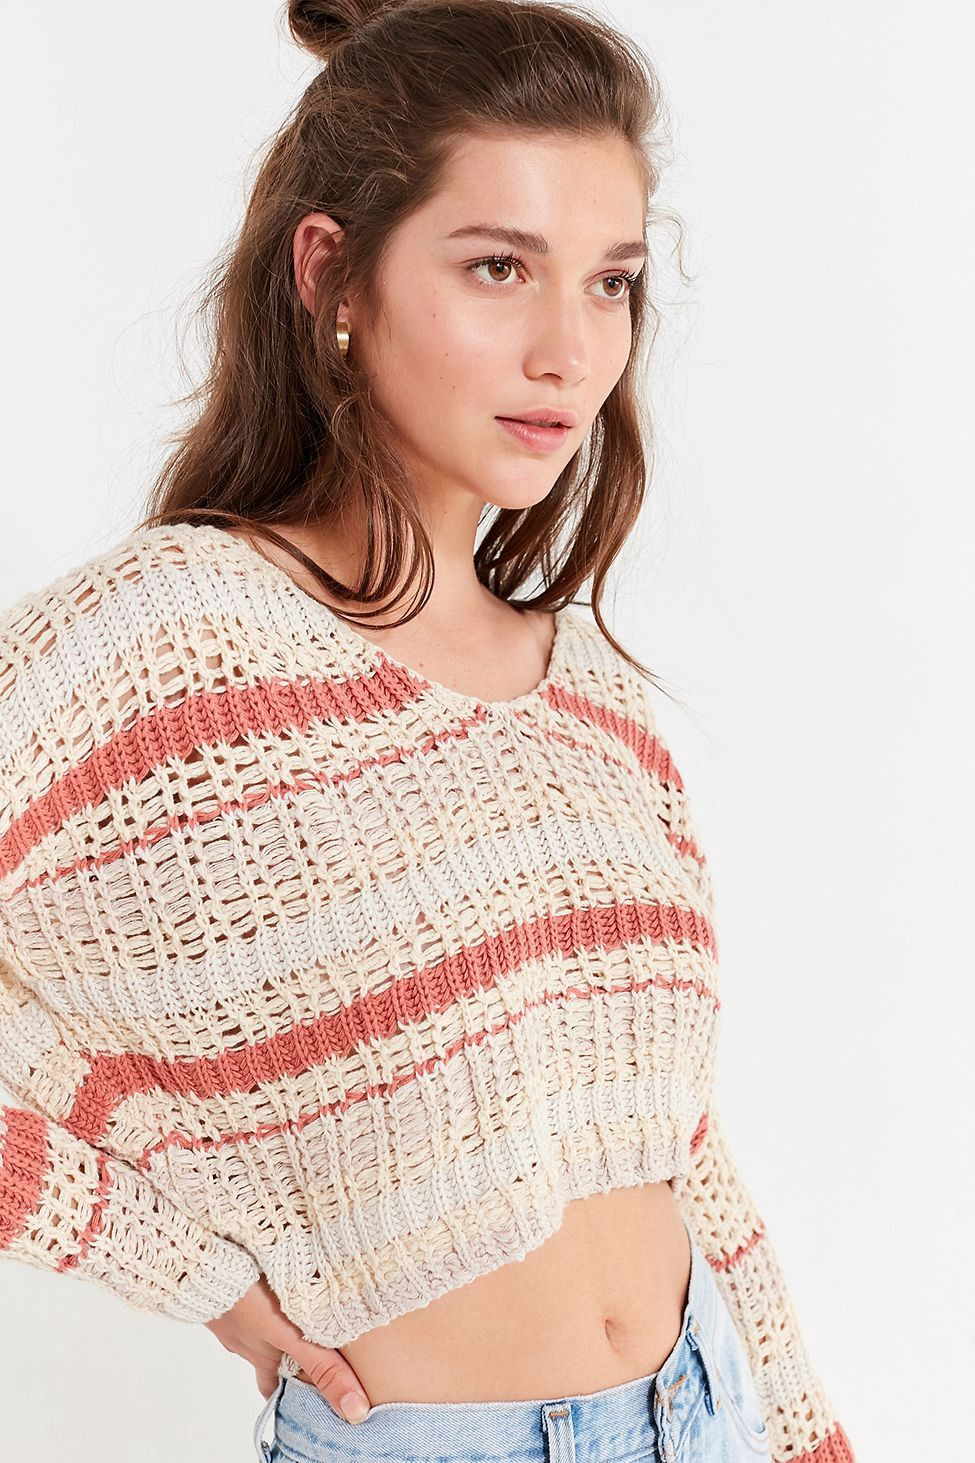 Uo Sasha Striped Cropped Sweater By Urban Outfitters Products